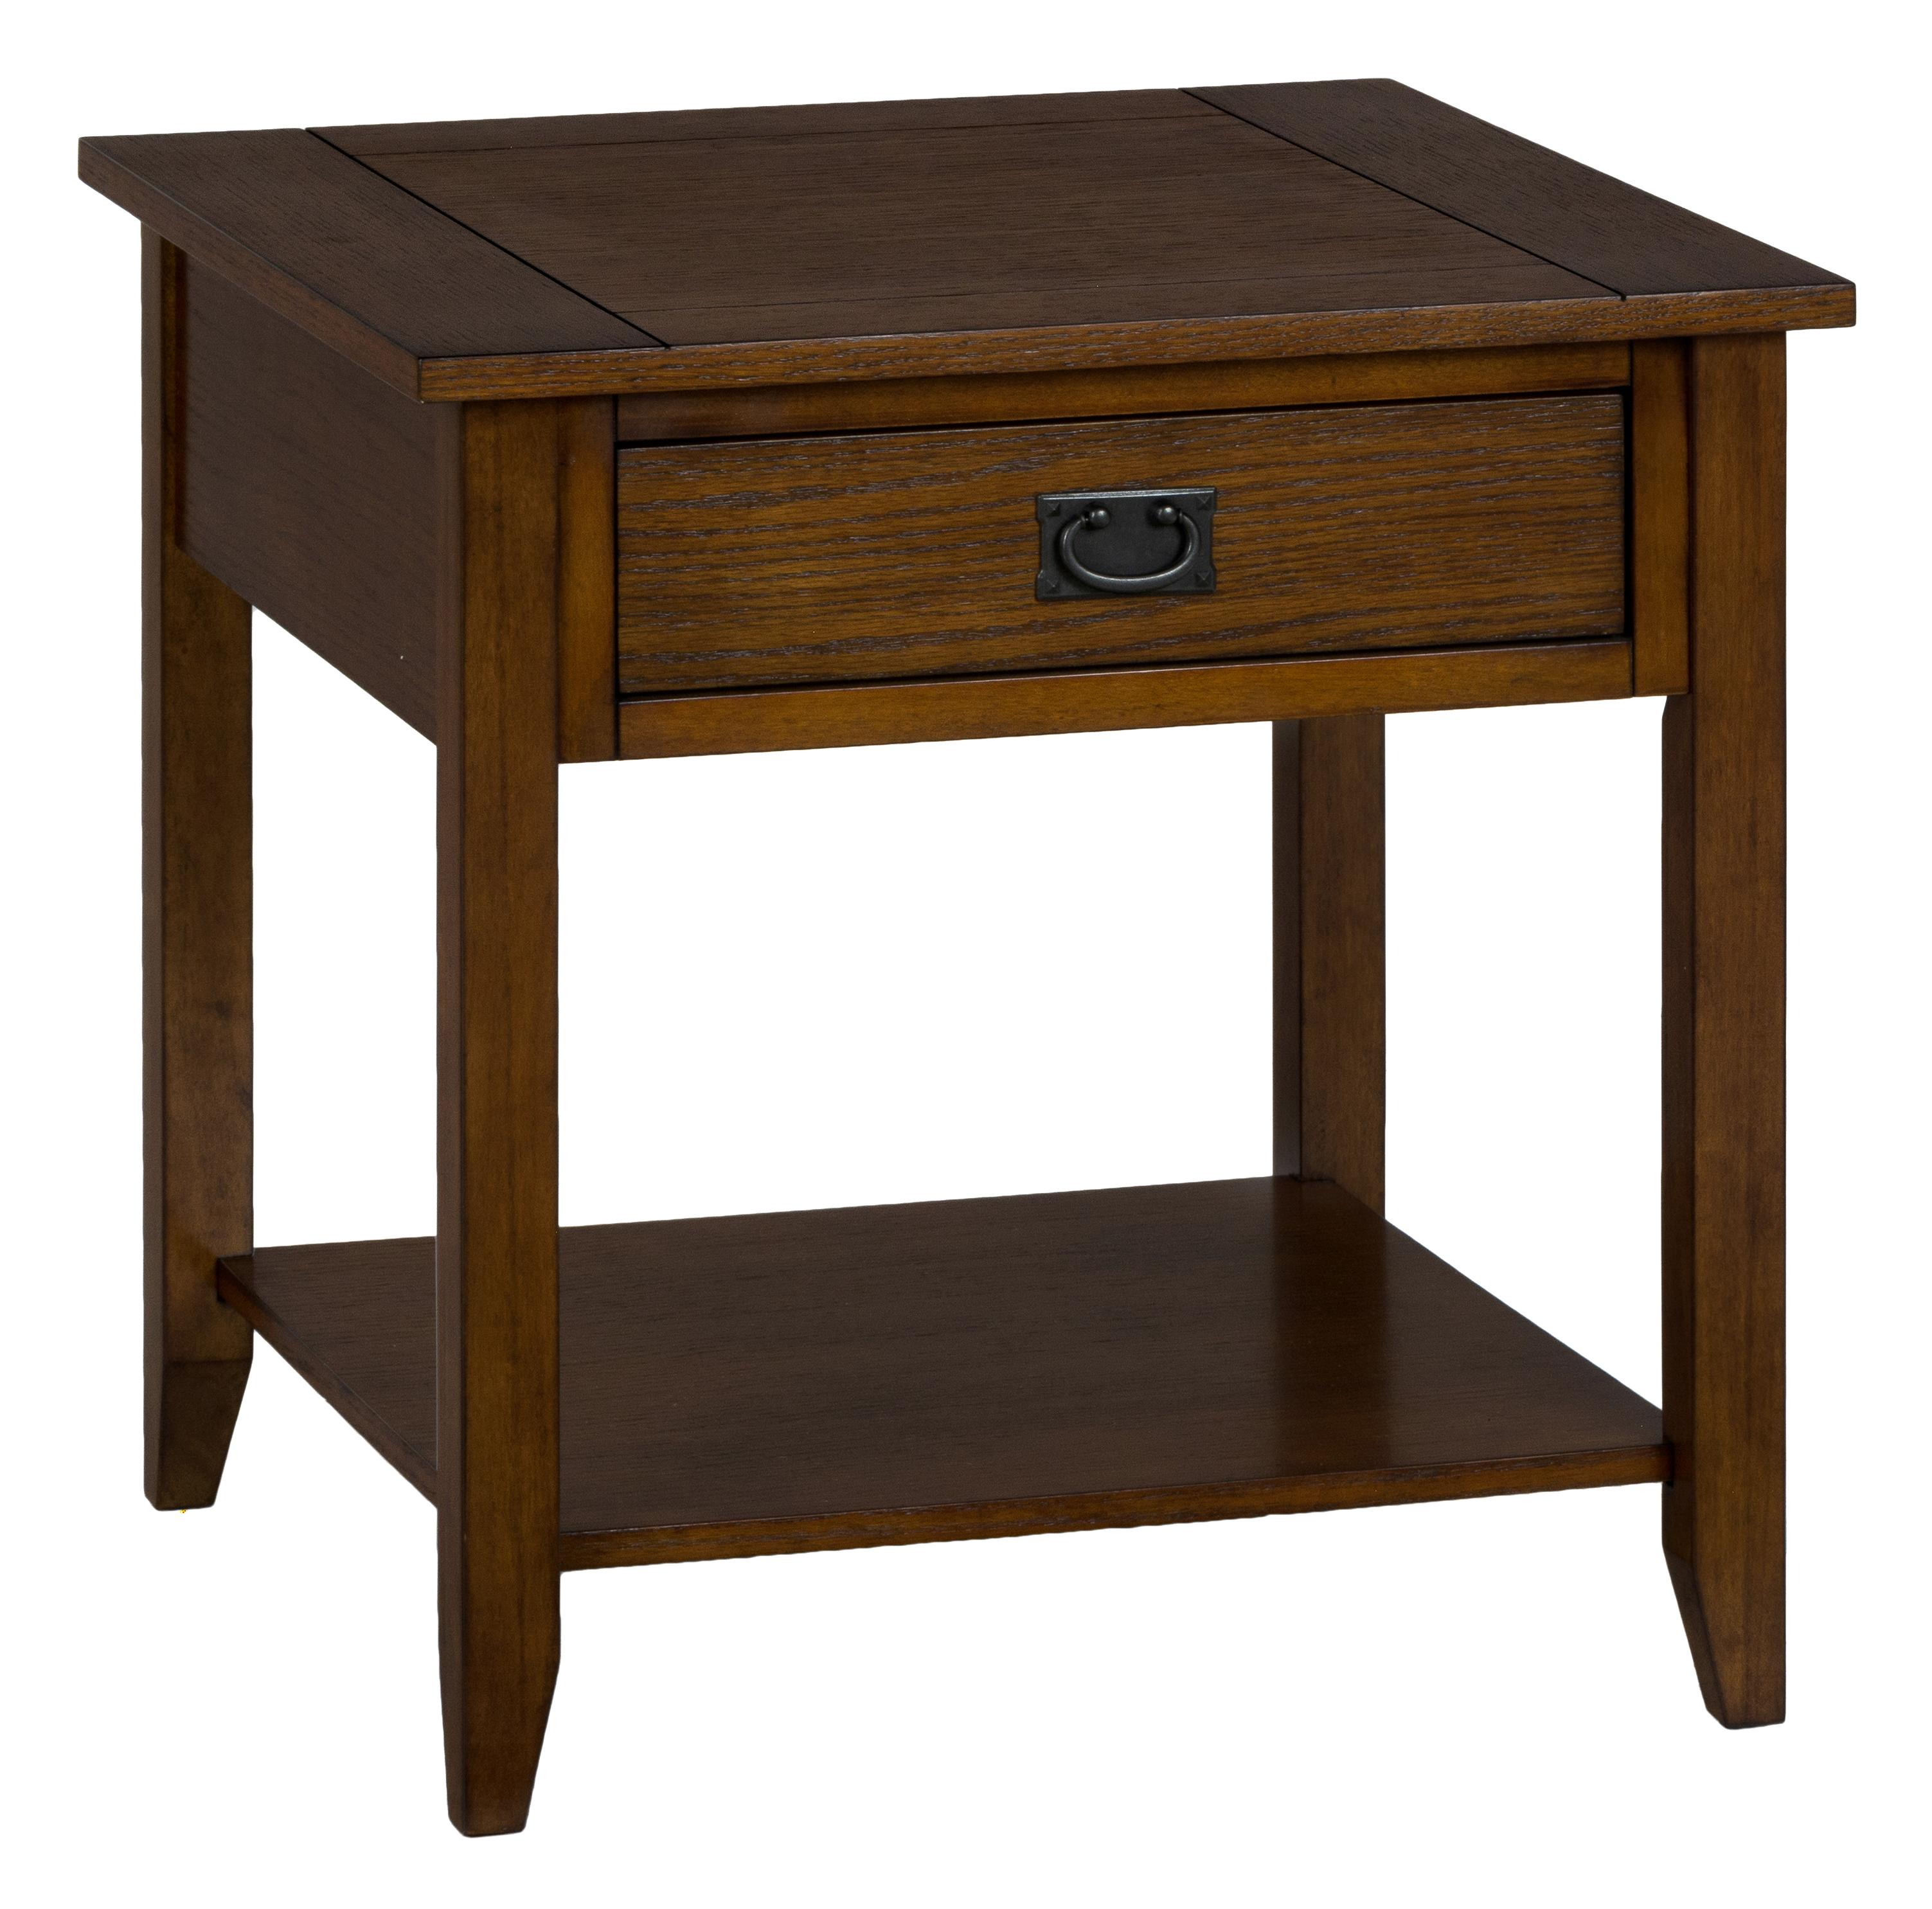 Jofran 1032 3 Mission Oak End Table With 1 Drawer And 1